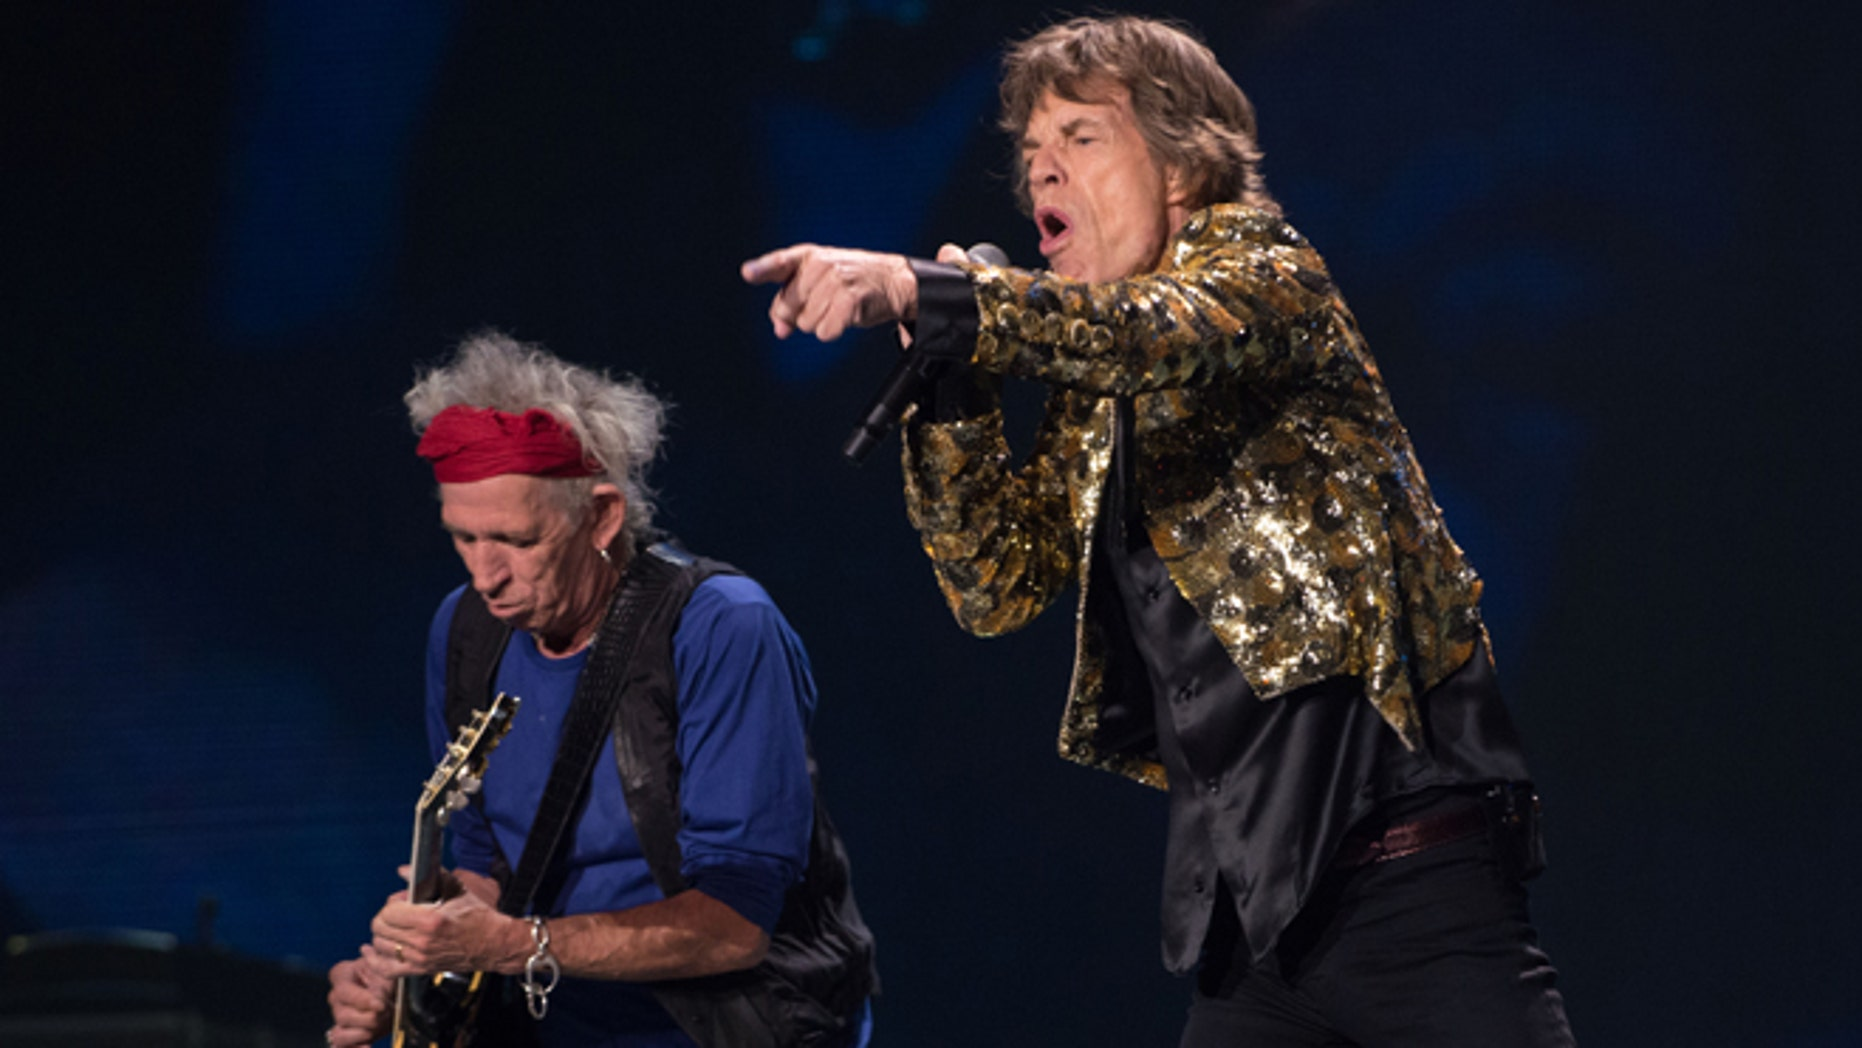 May 11: Keith Richards and Mick Jagger of the Rolling Stones performs in concert at the MGM Grand Garden Arena.